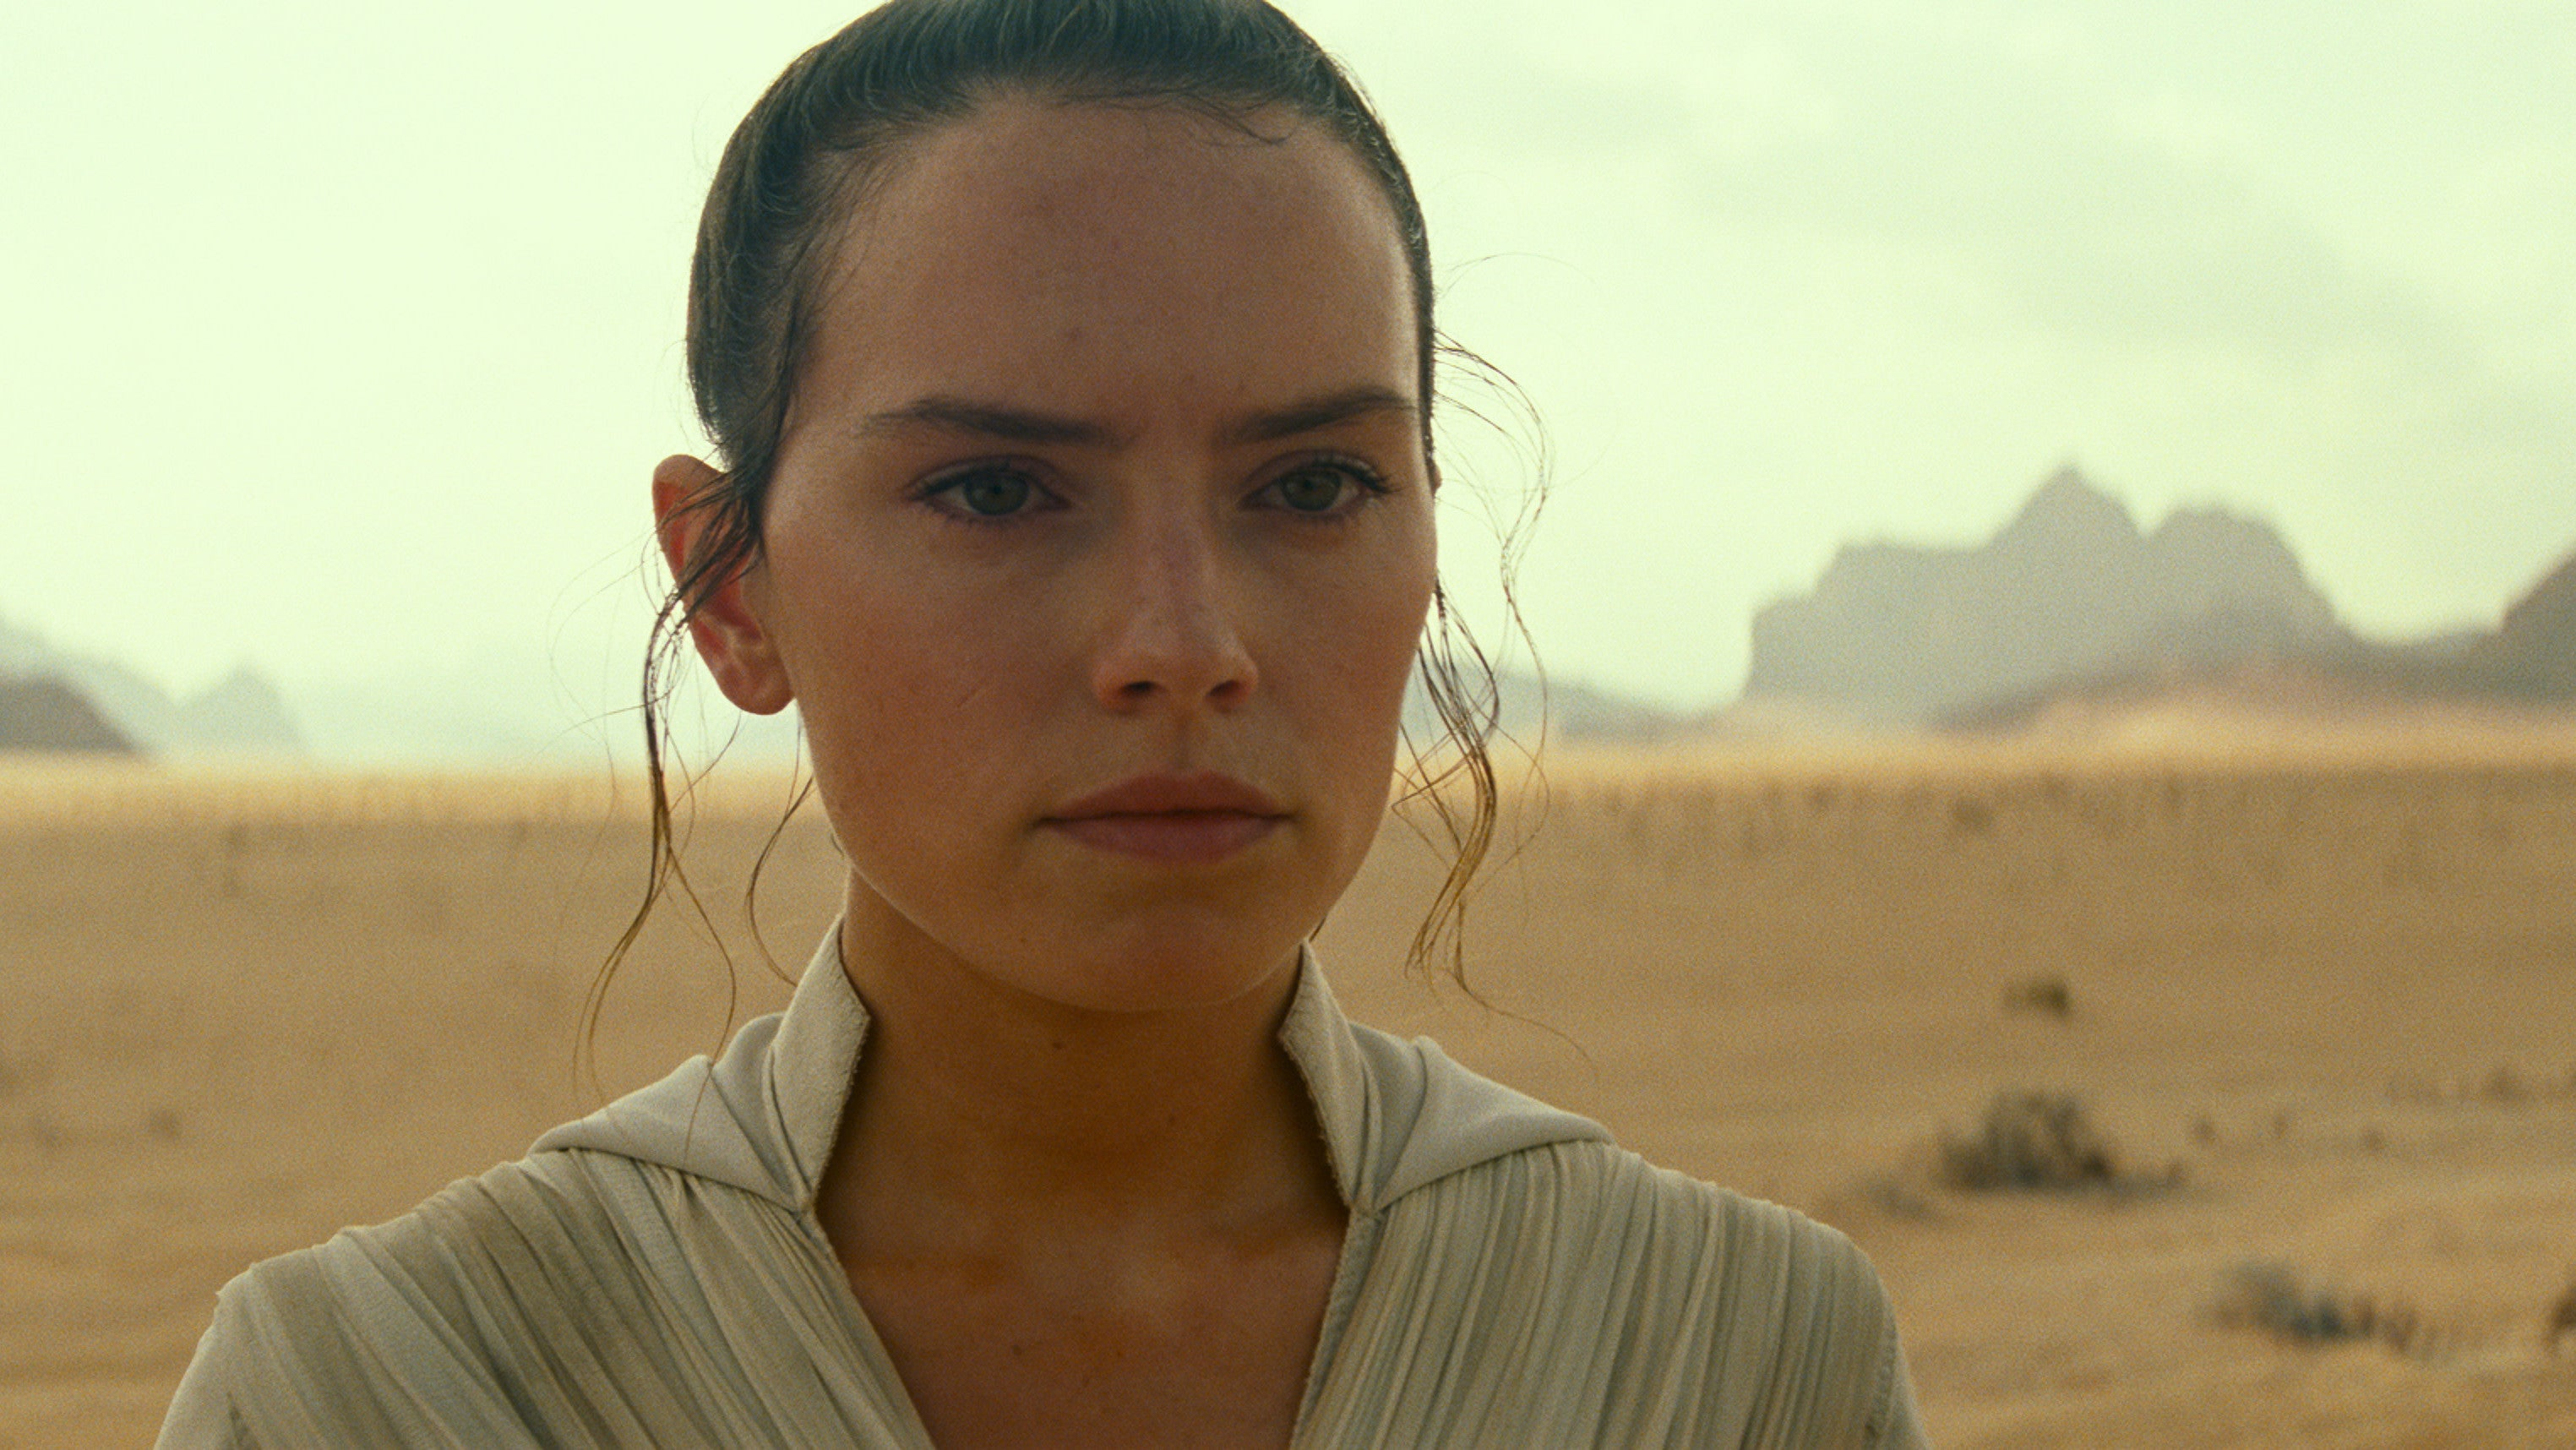 Daisy Ridley Would Love It If You Stopped Asking Her About Porgs